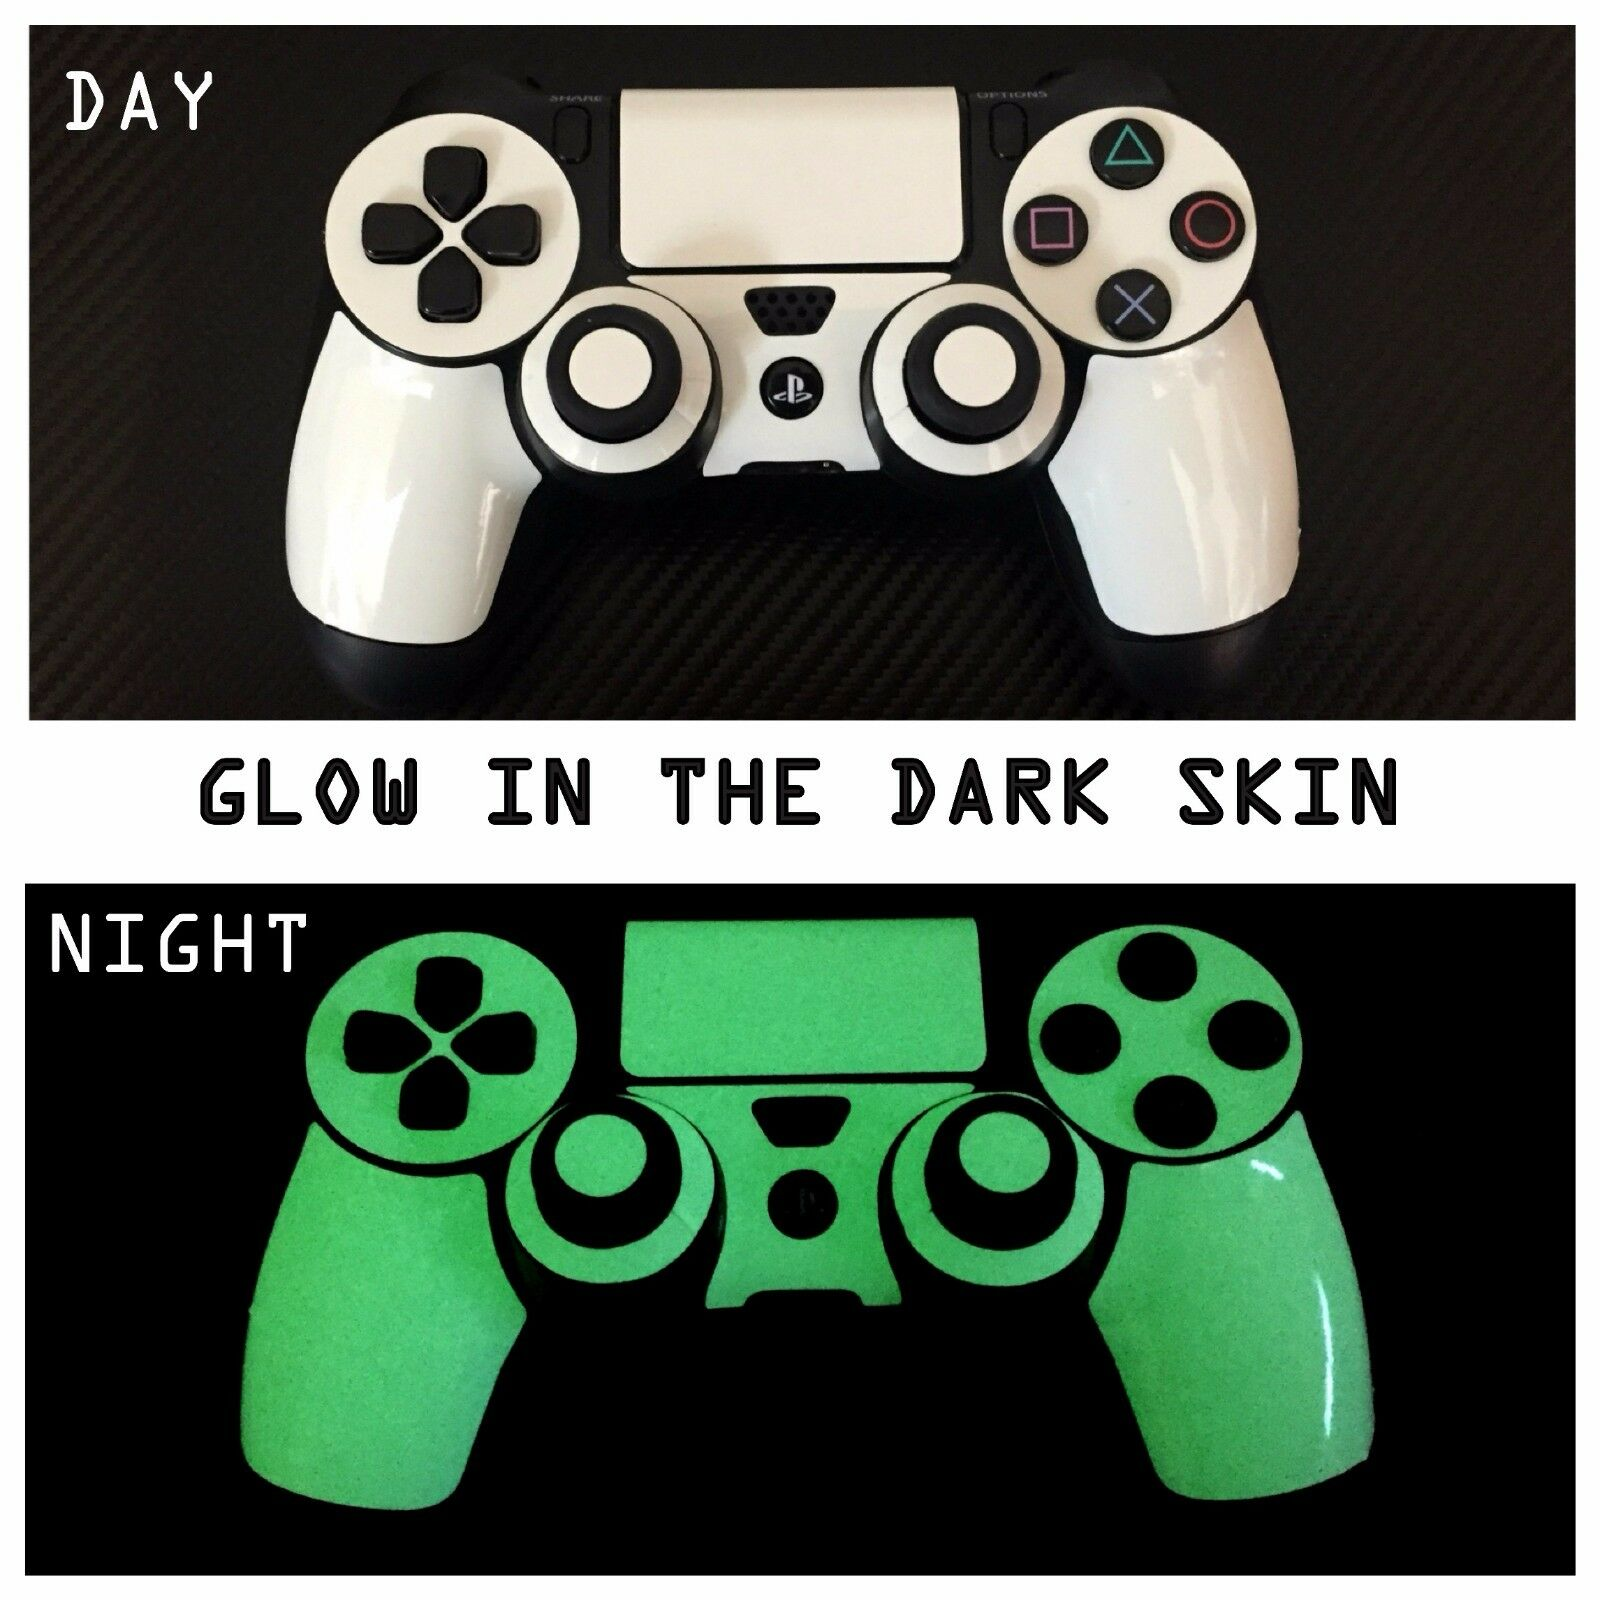 Playstation 4 PS4 - Glow in the DARK Skin Wrap Decal Sticker Luminescent Vinyl